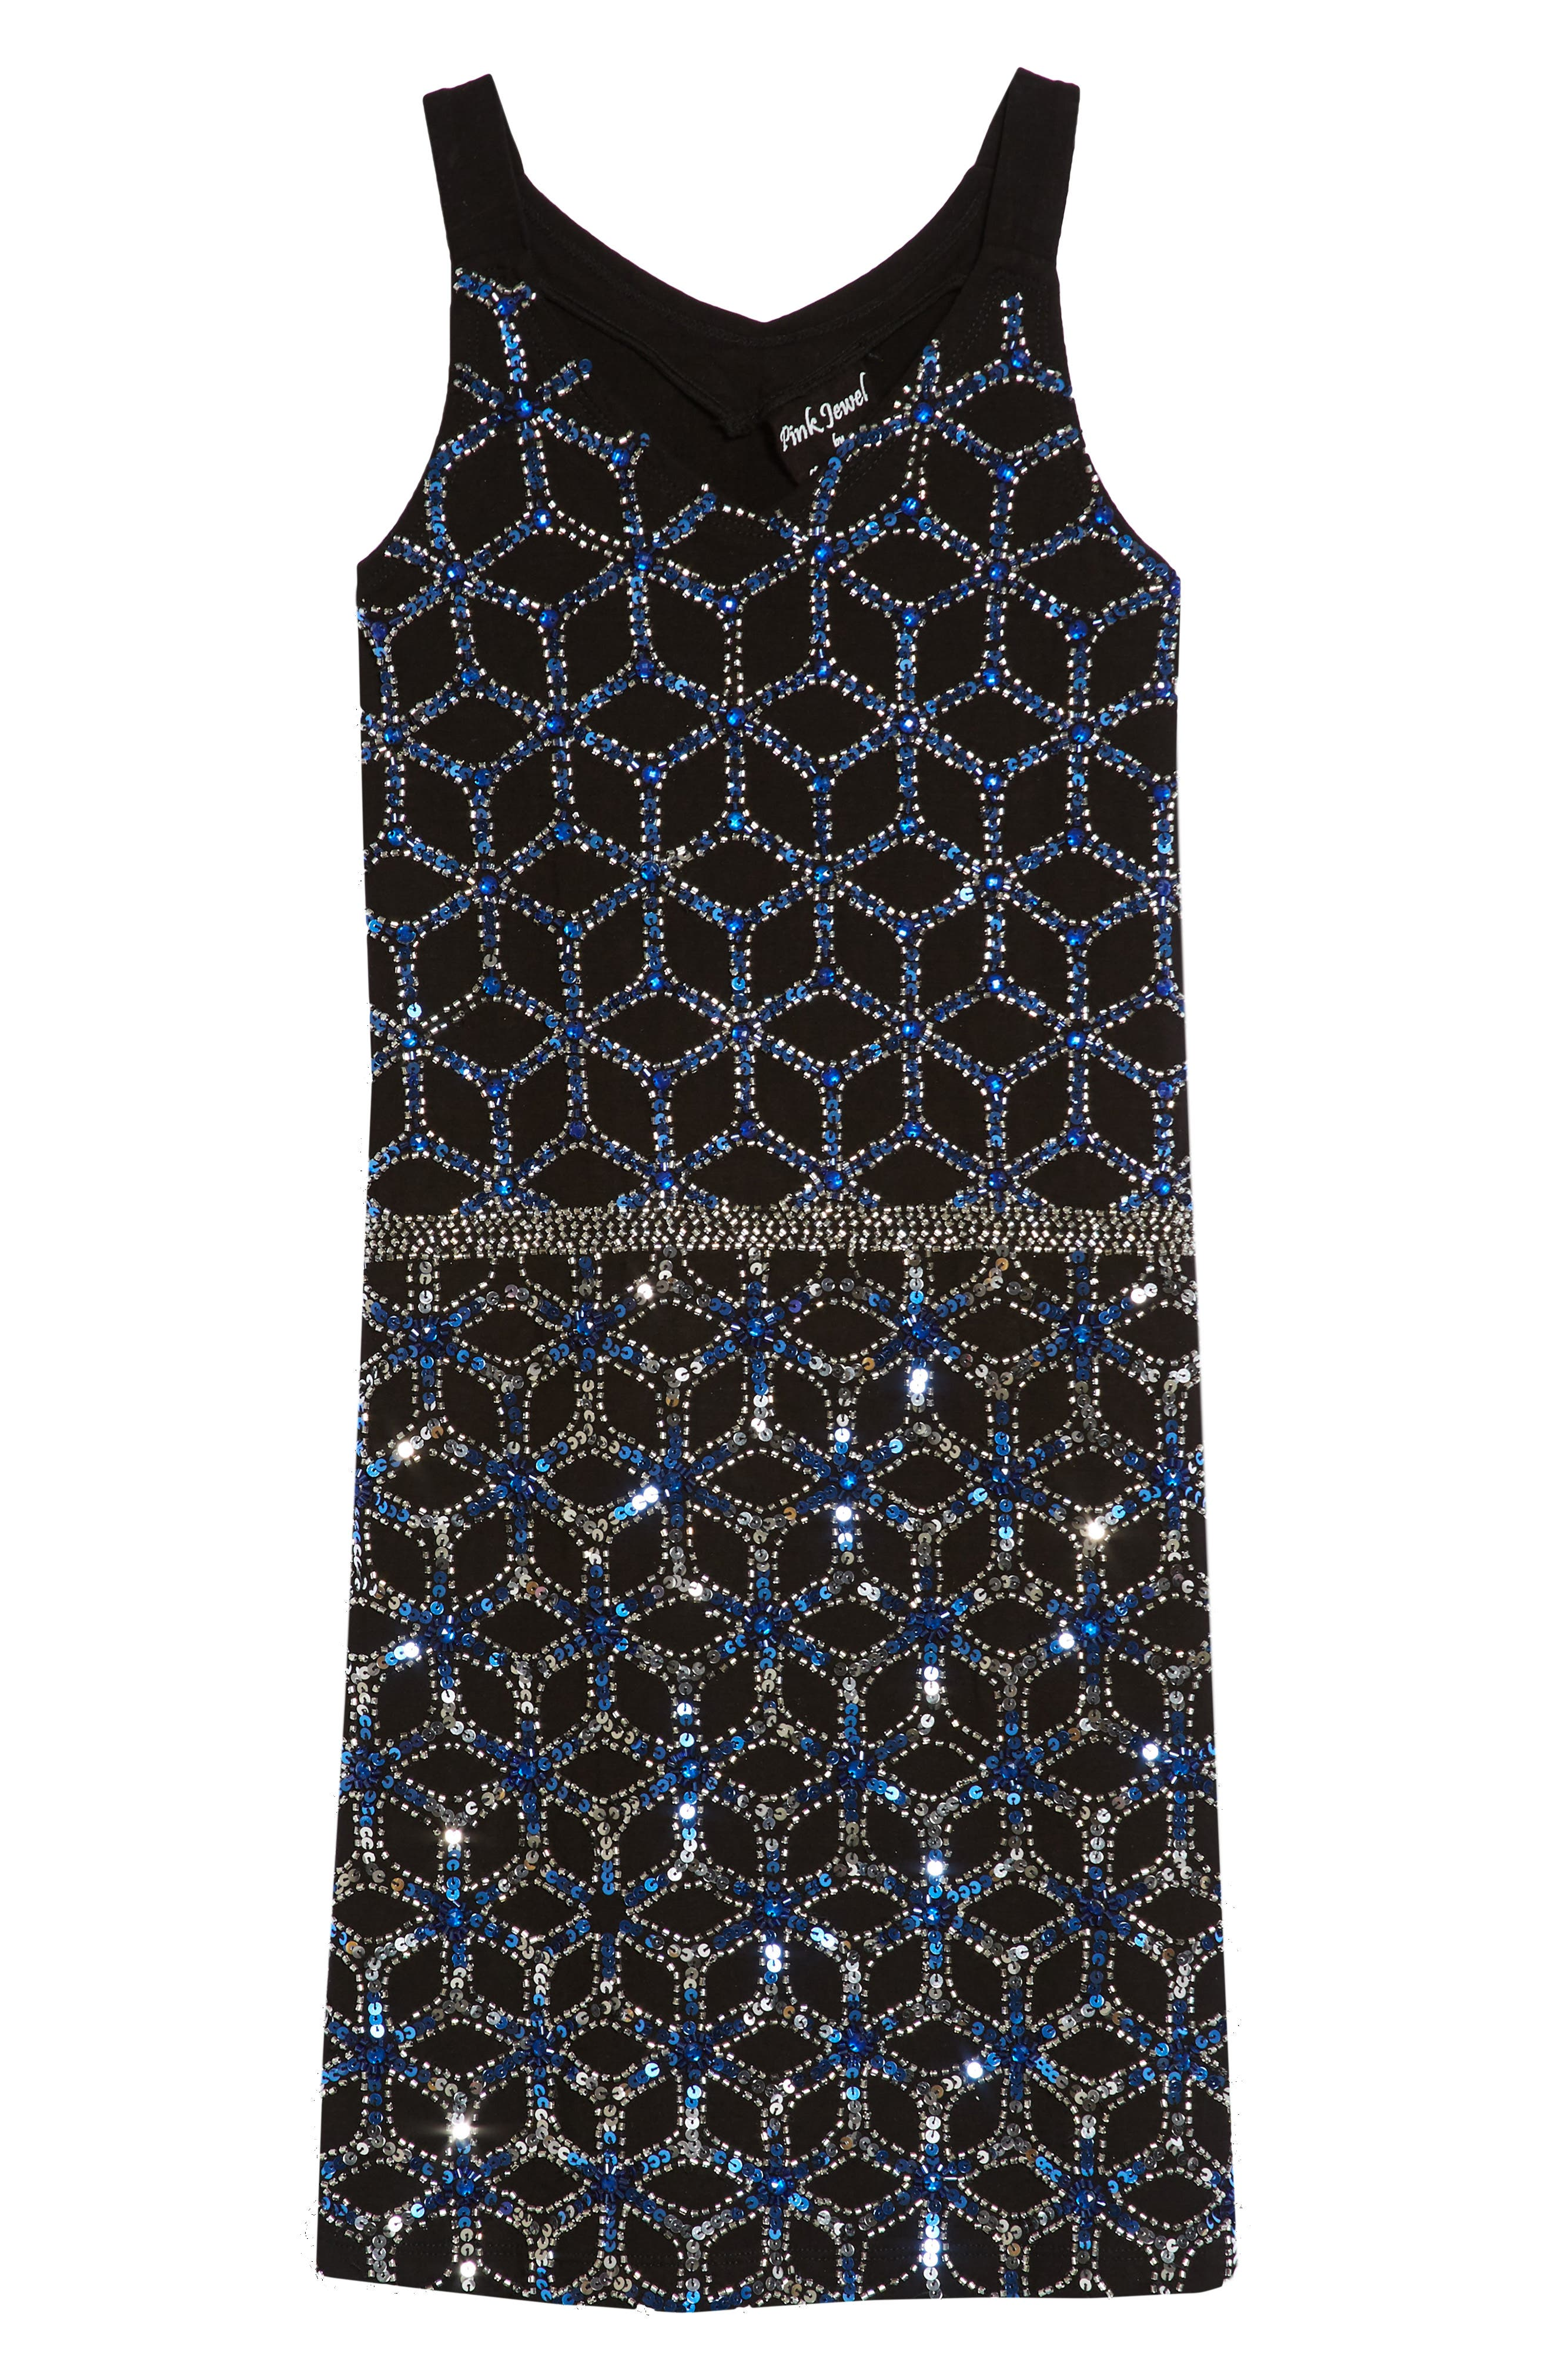 Sequined & Beaded Tank Dress,                             Main thumbnail 1, color,                             Black/ Blue